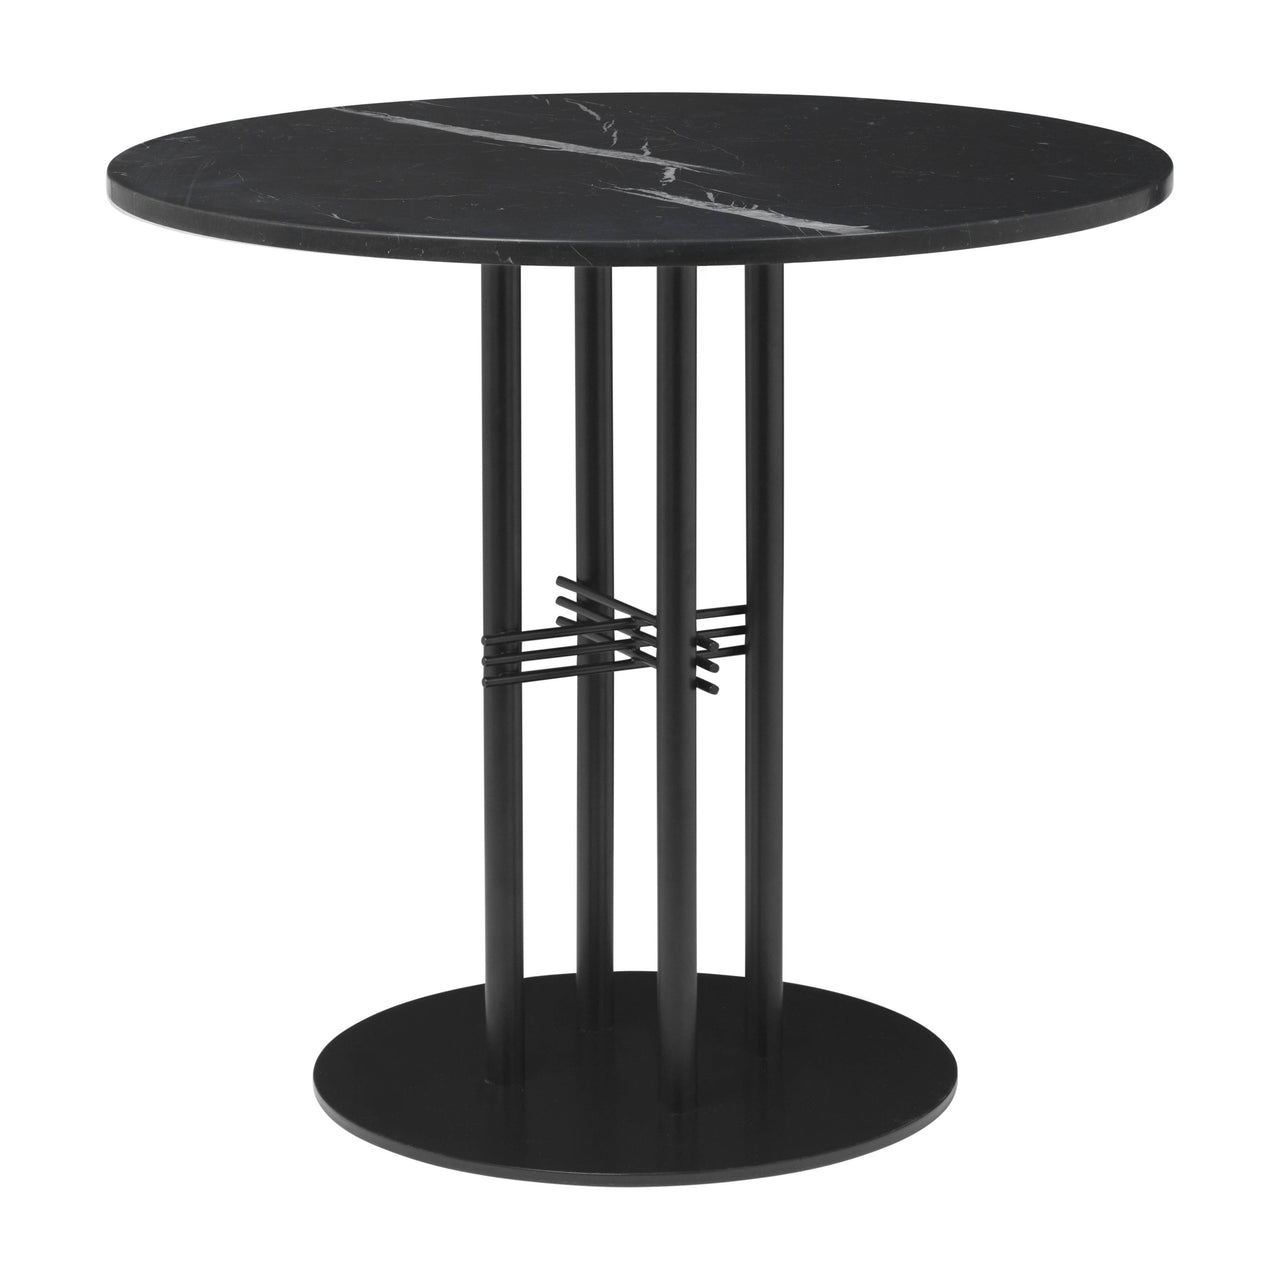 TS Column Dining Table: Small + Black Base + Black Marquina Marble